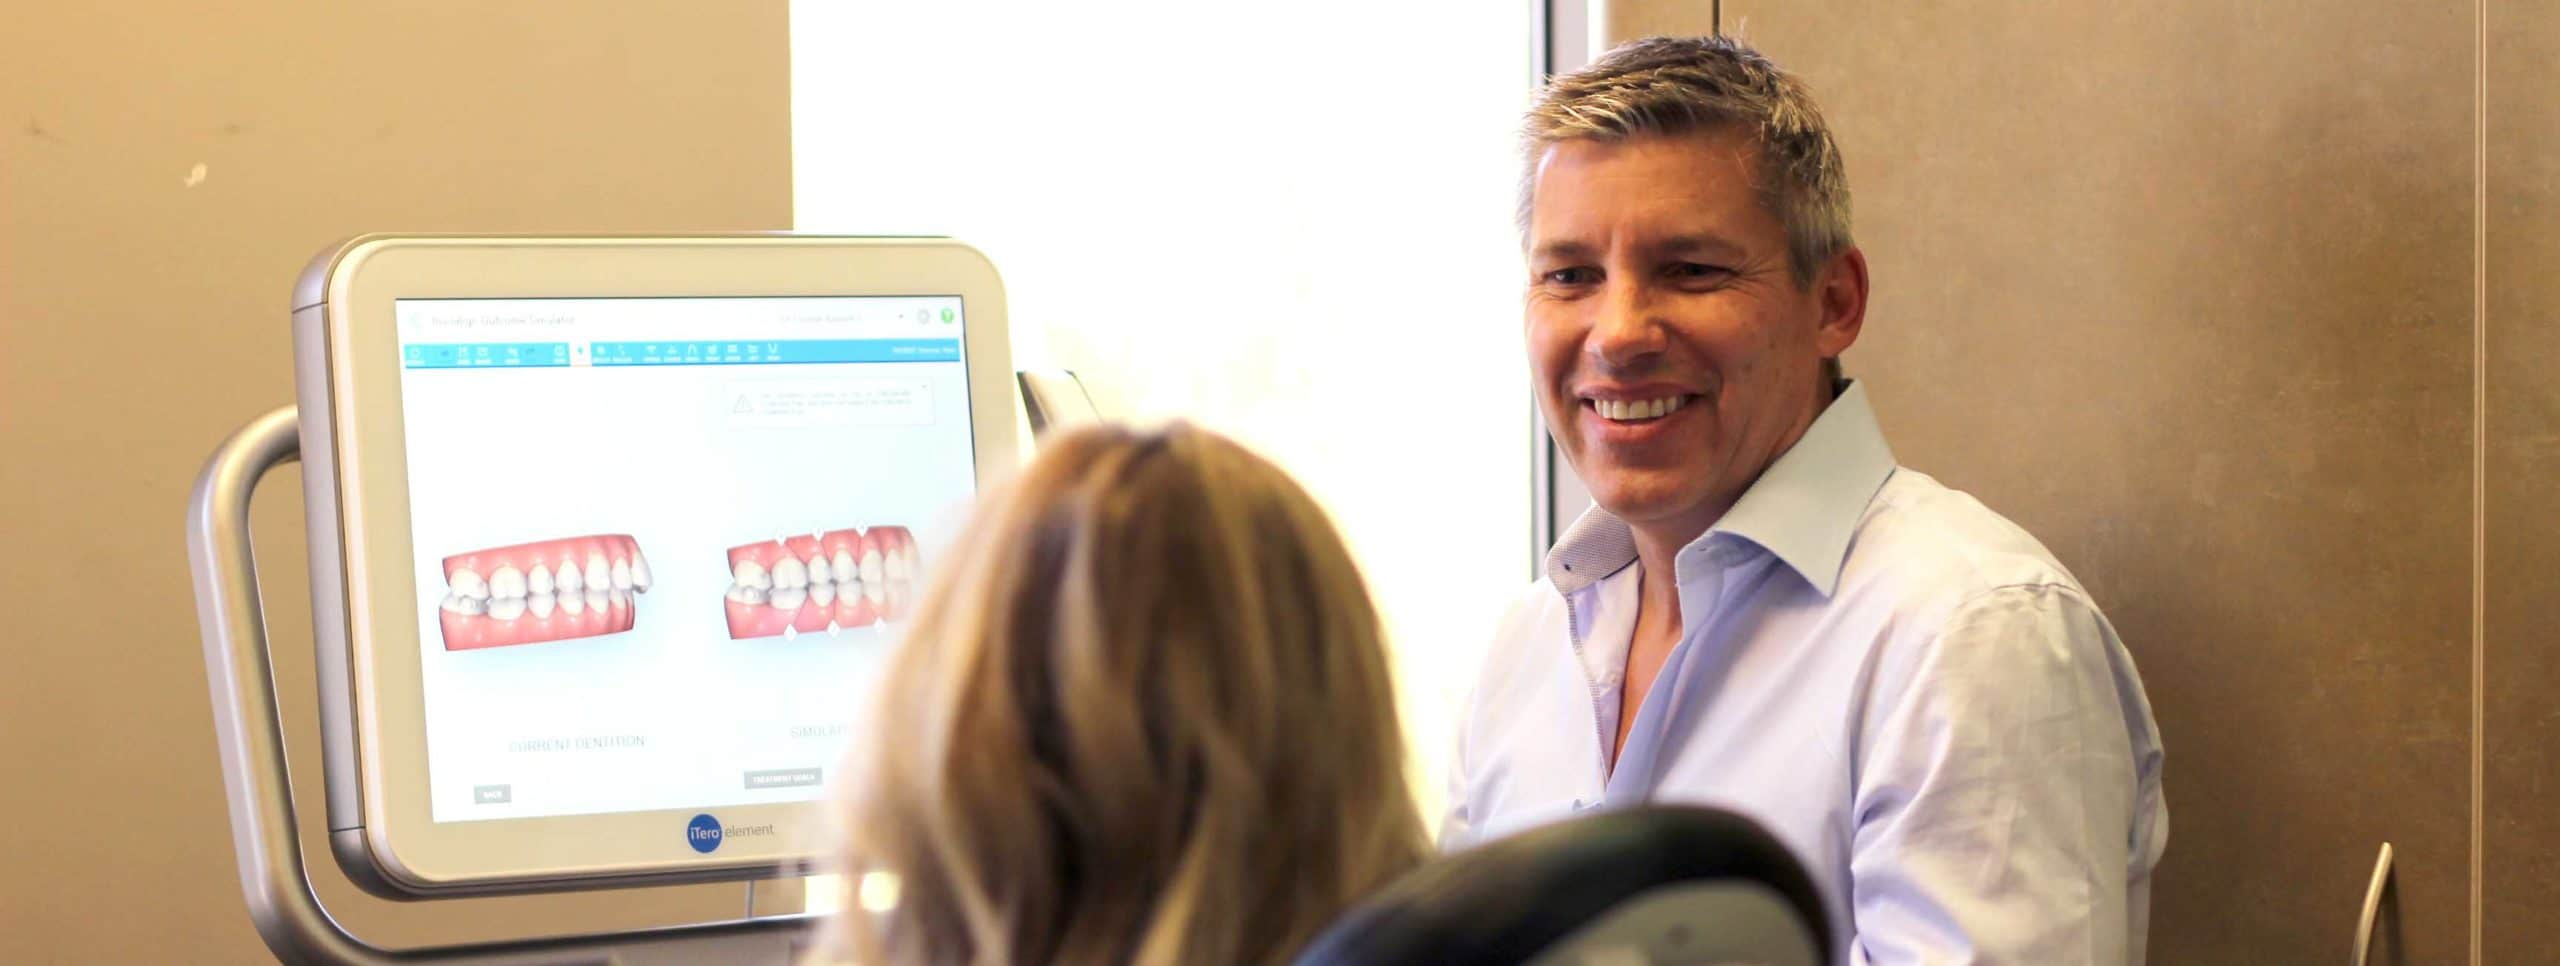 Do I Need A Dentist Referral To See An Orthodontist?